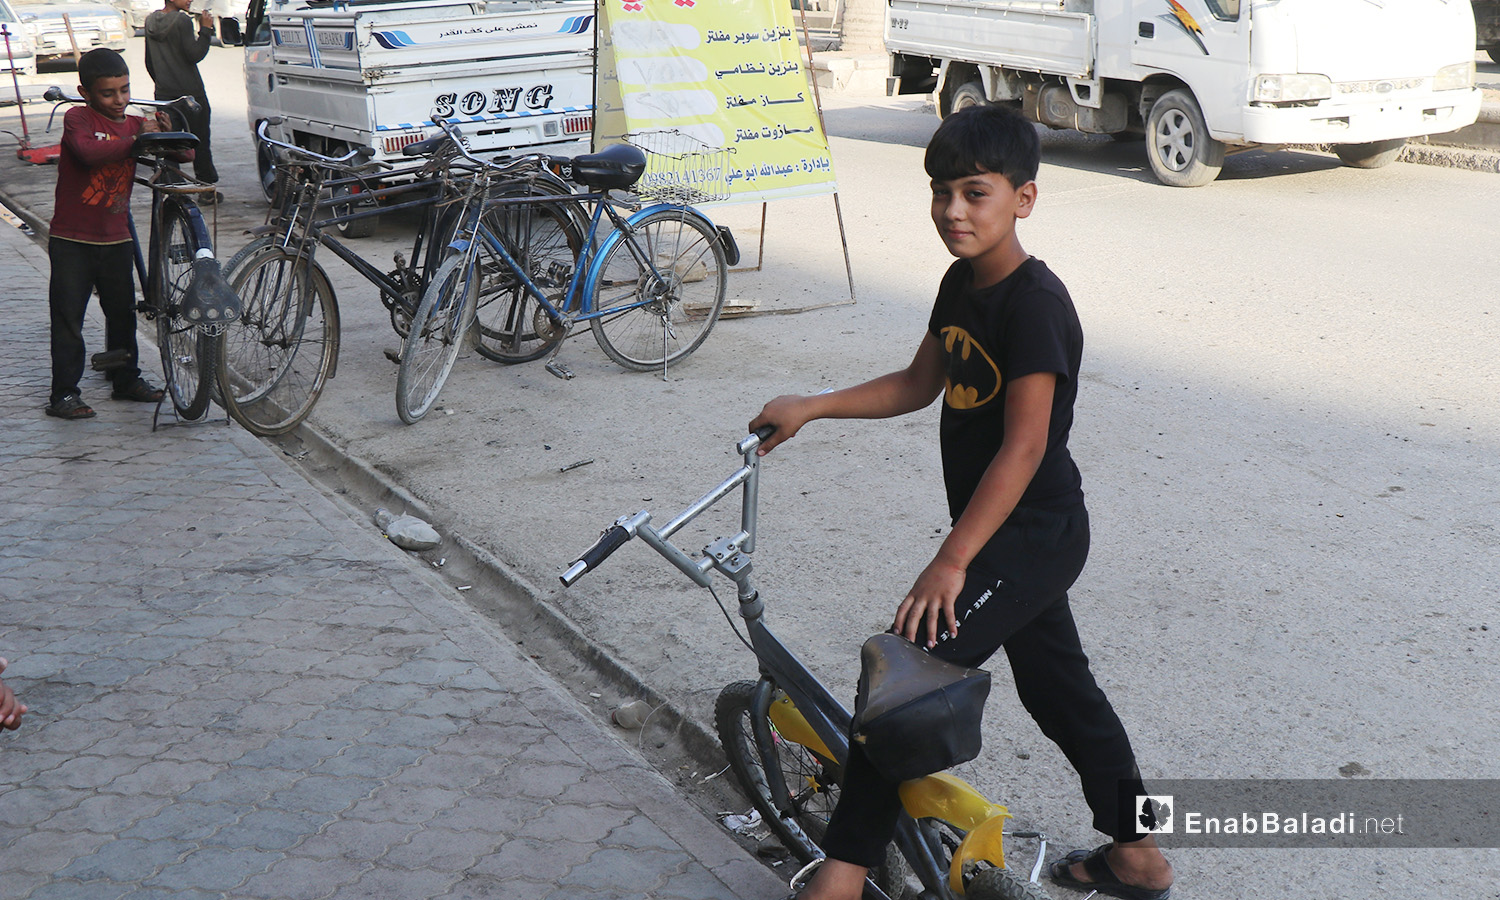 A child with his bicycle in al-Raqqa city – 26 July 2020 (Enab Baladi / Abdul Aziz Saleh)